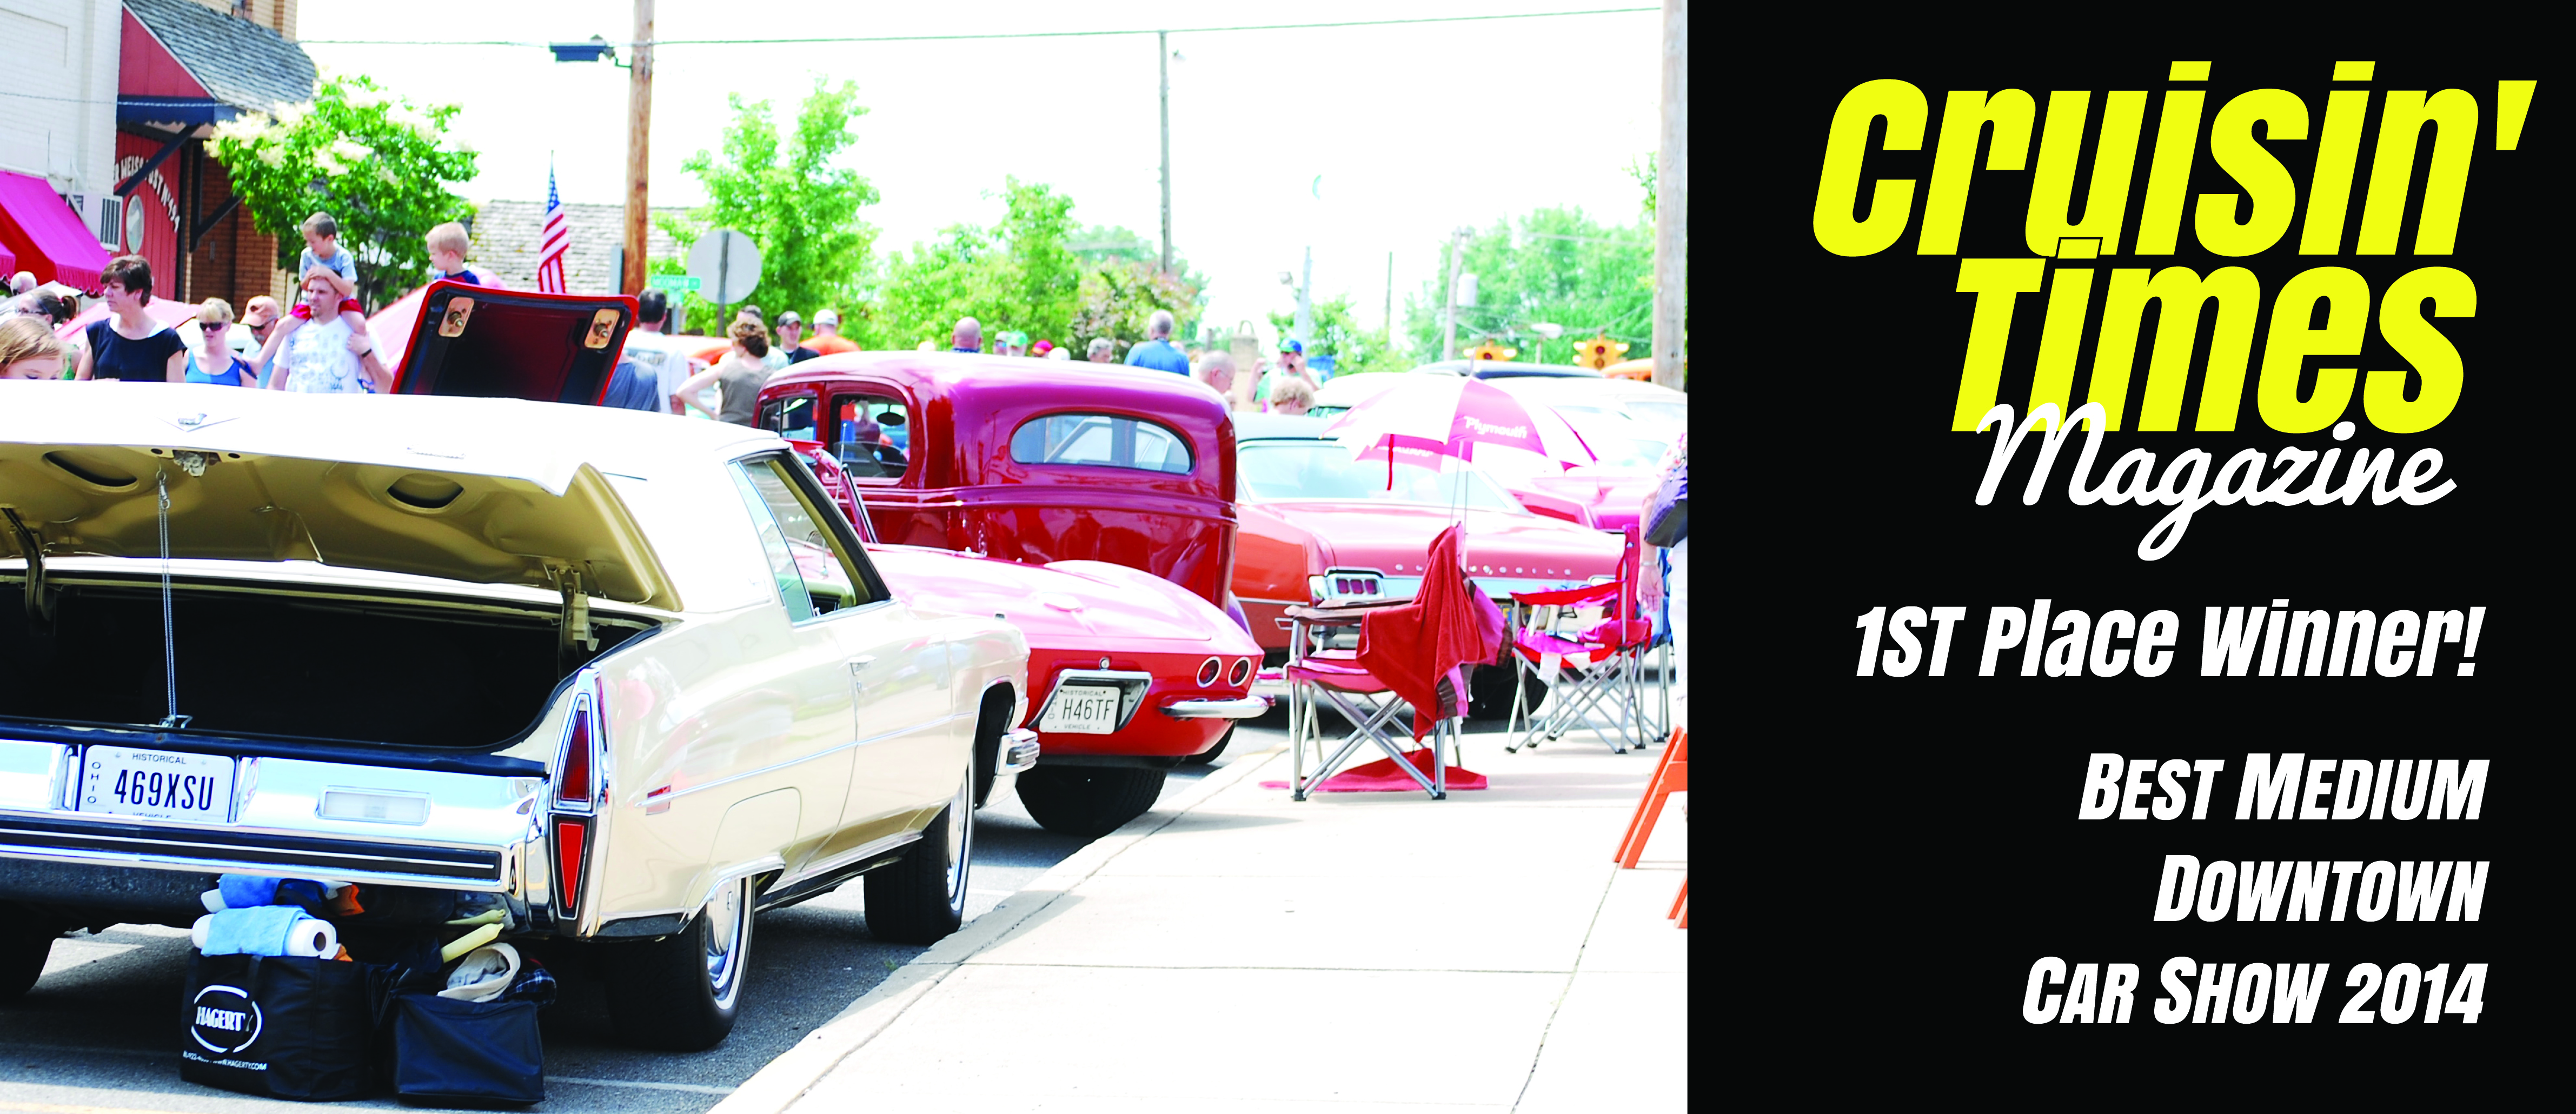 The 24th Annual Fabulous Fifties Fling is brought to you by the Sugarcreek Timing Association